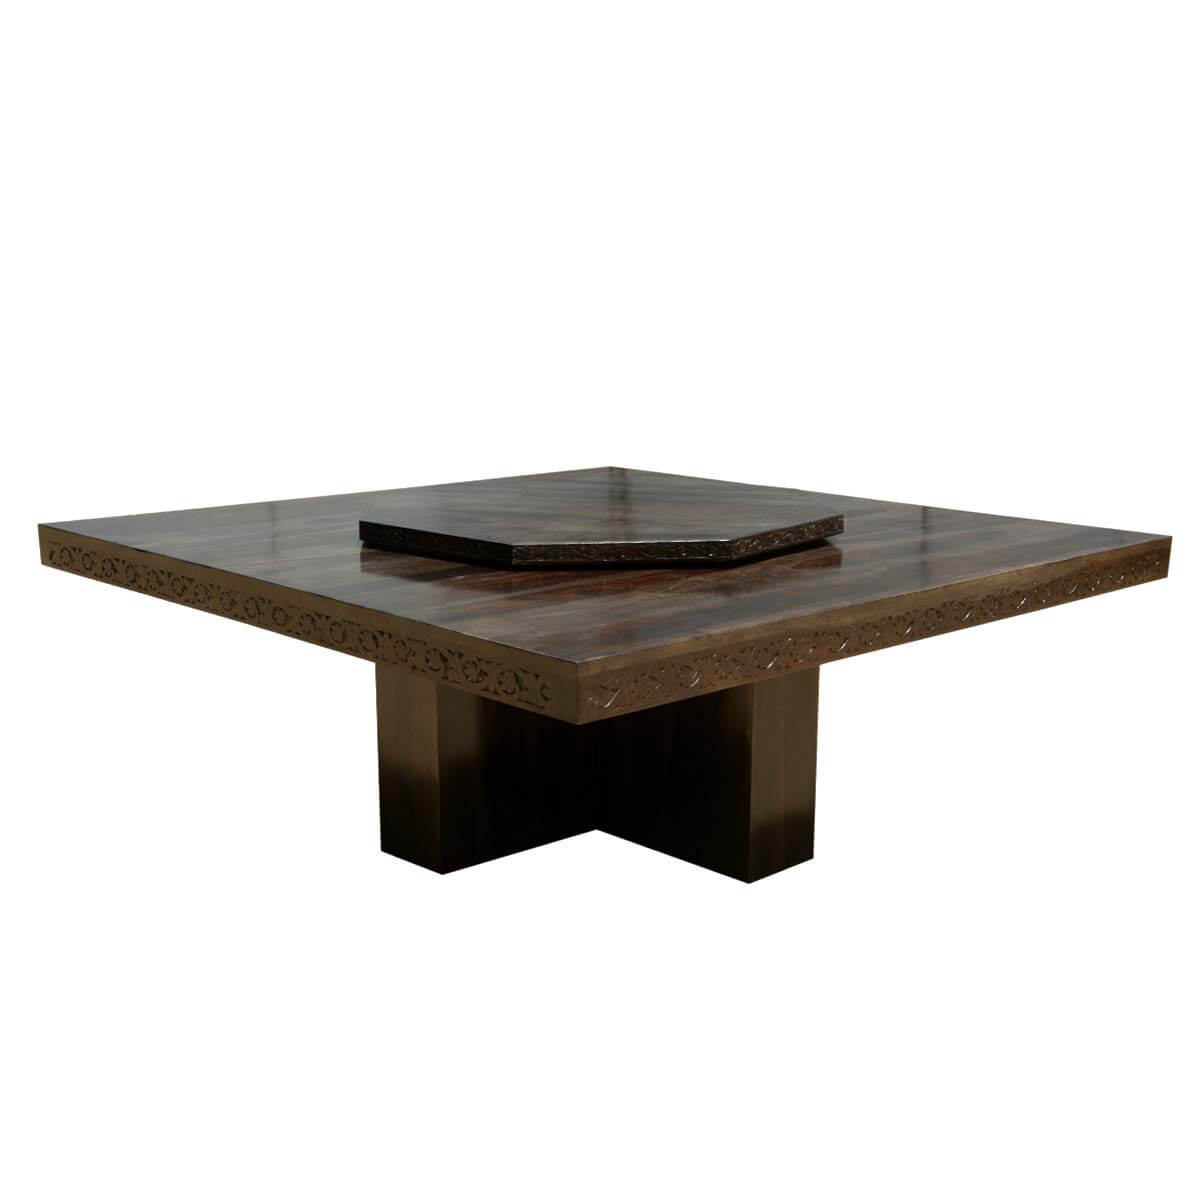 square solid wood pedestal dining table w lazy susan